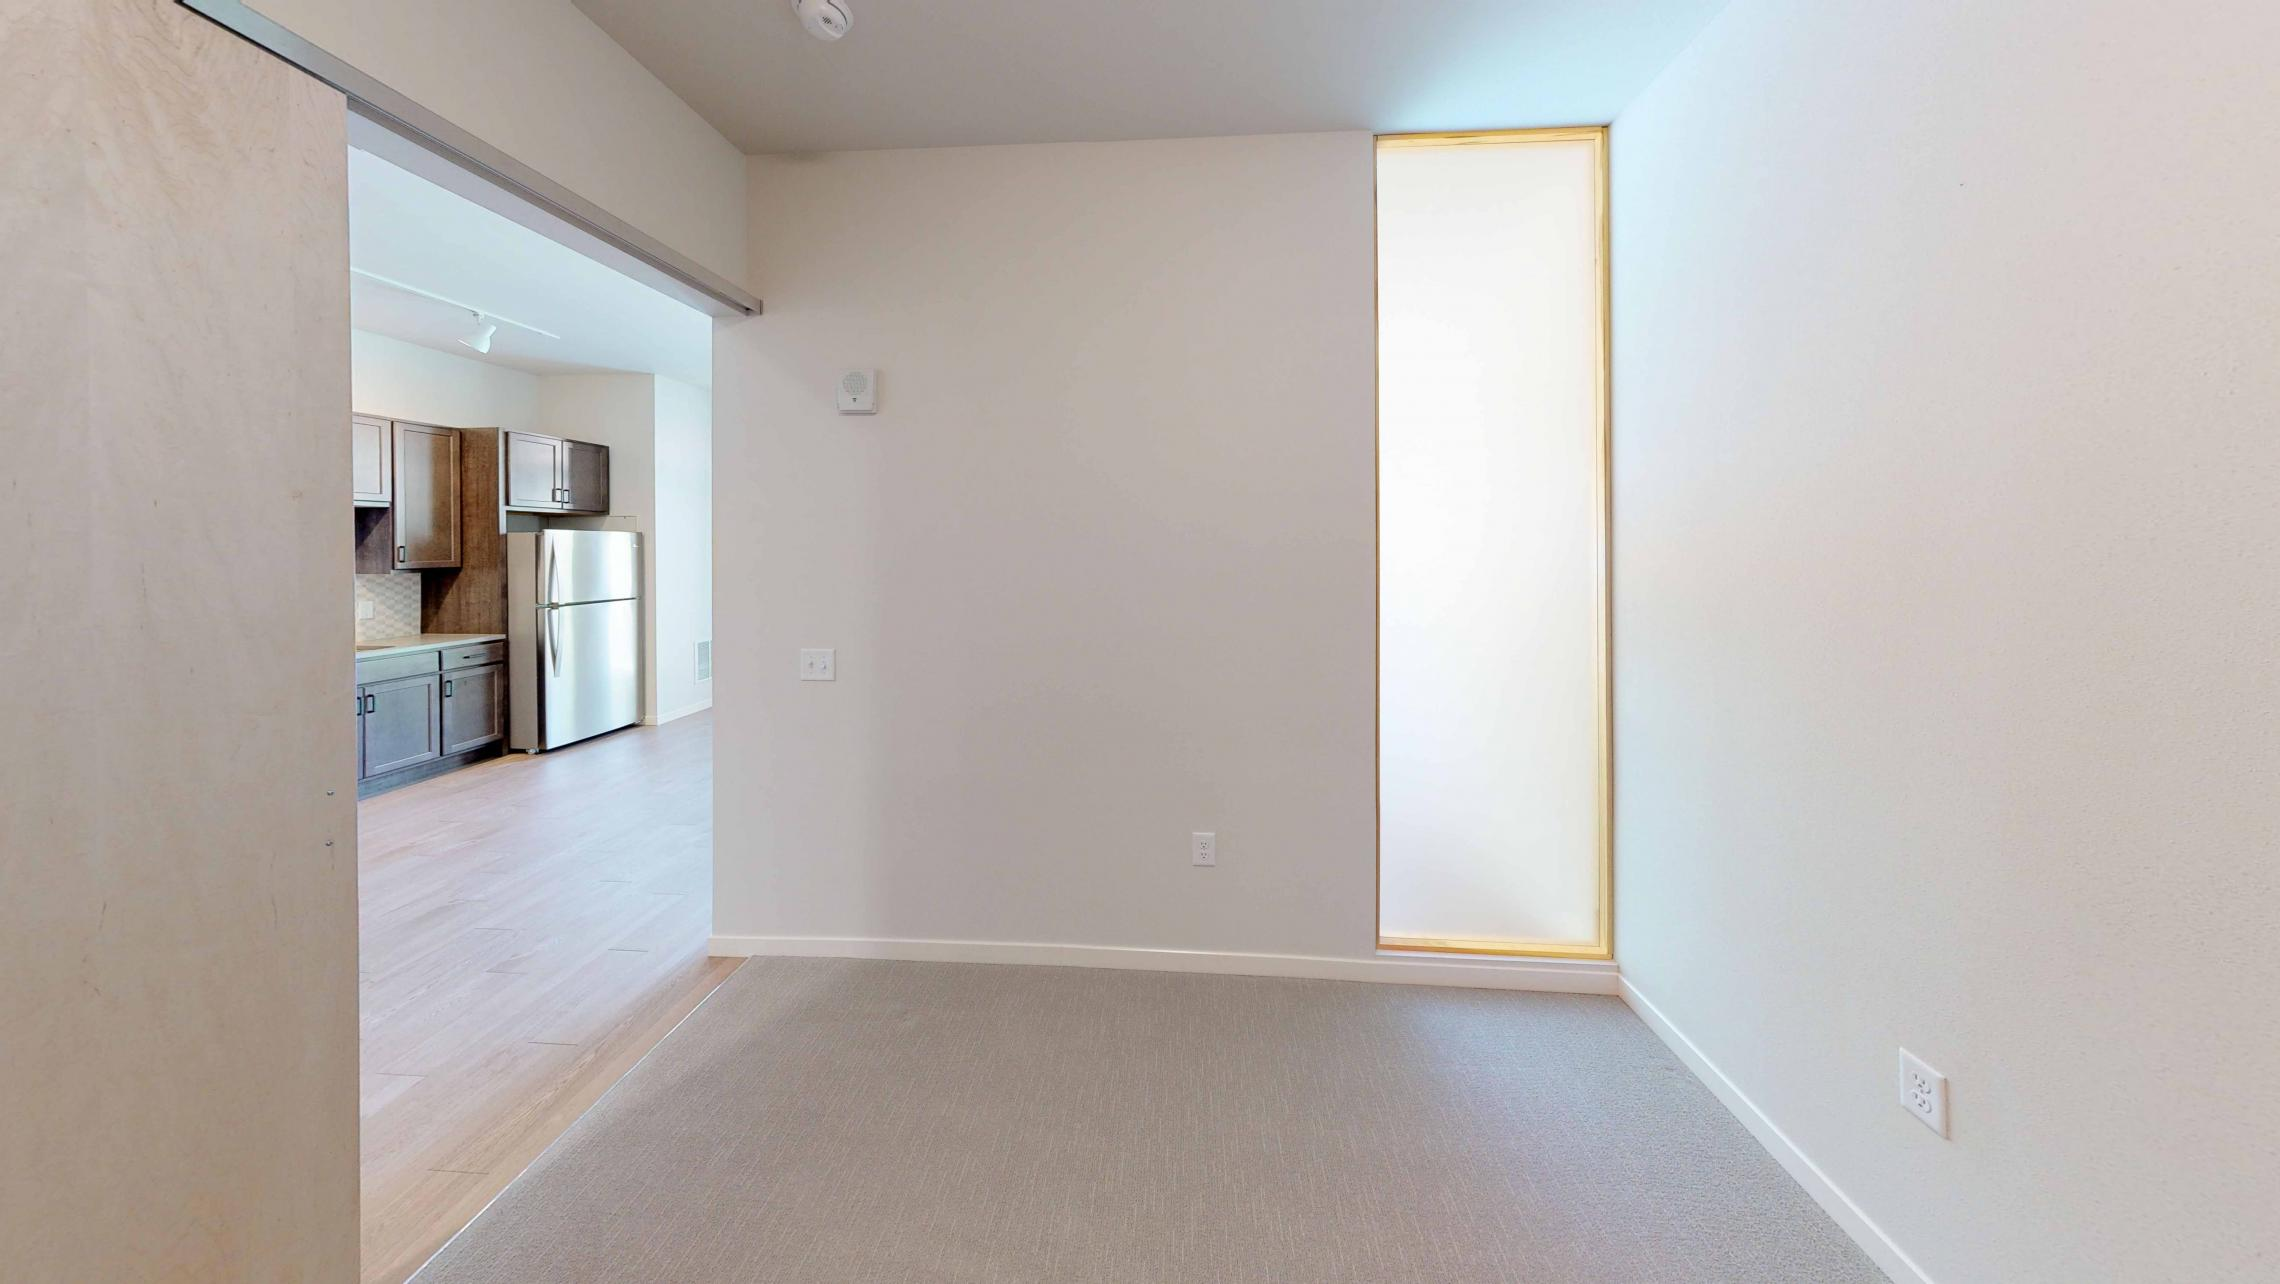 Quarter-Row-Yards-Apartment-110-One-Bedroom-Patio-Modern-Upscale-Fitness-Lounge-Courtyard-Downtown-Madison-View-Bike-Trail-Lifestyle-Lake-Monona